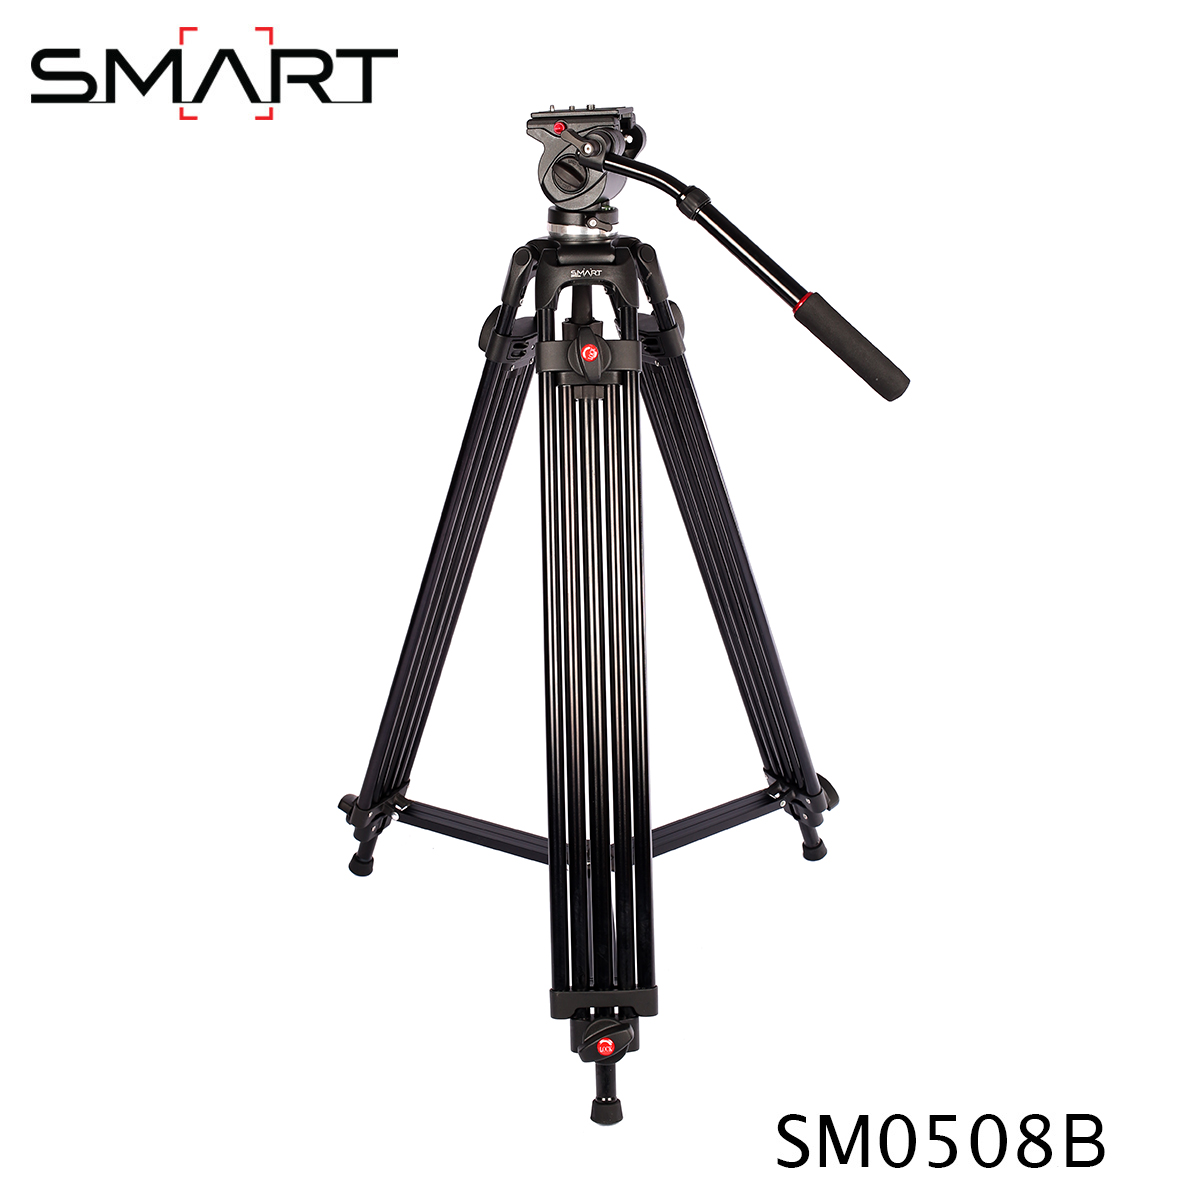 SMART Tripod SM0508B Aluminum Alloy Professional For Video & Camera